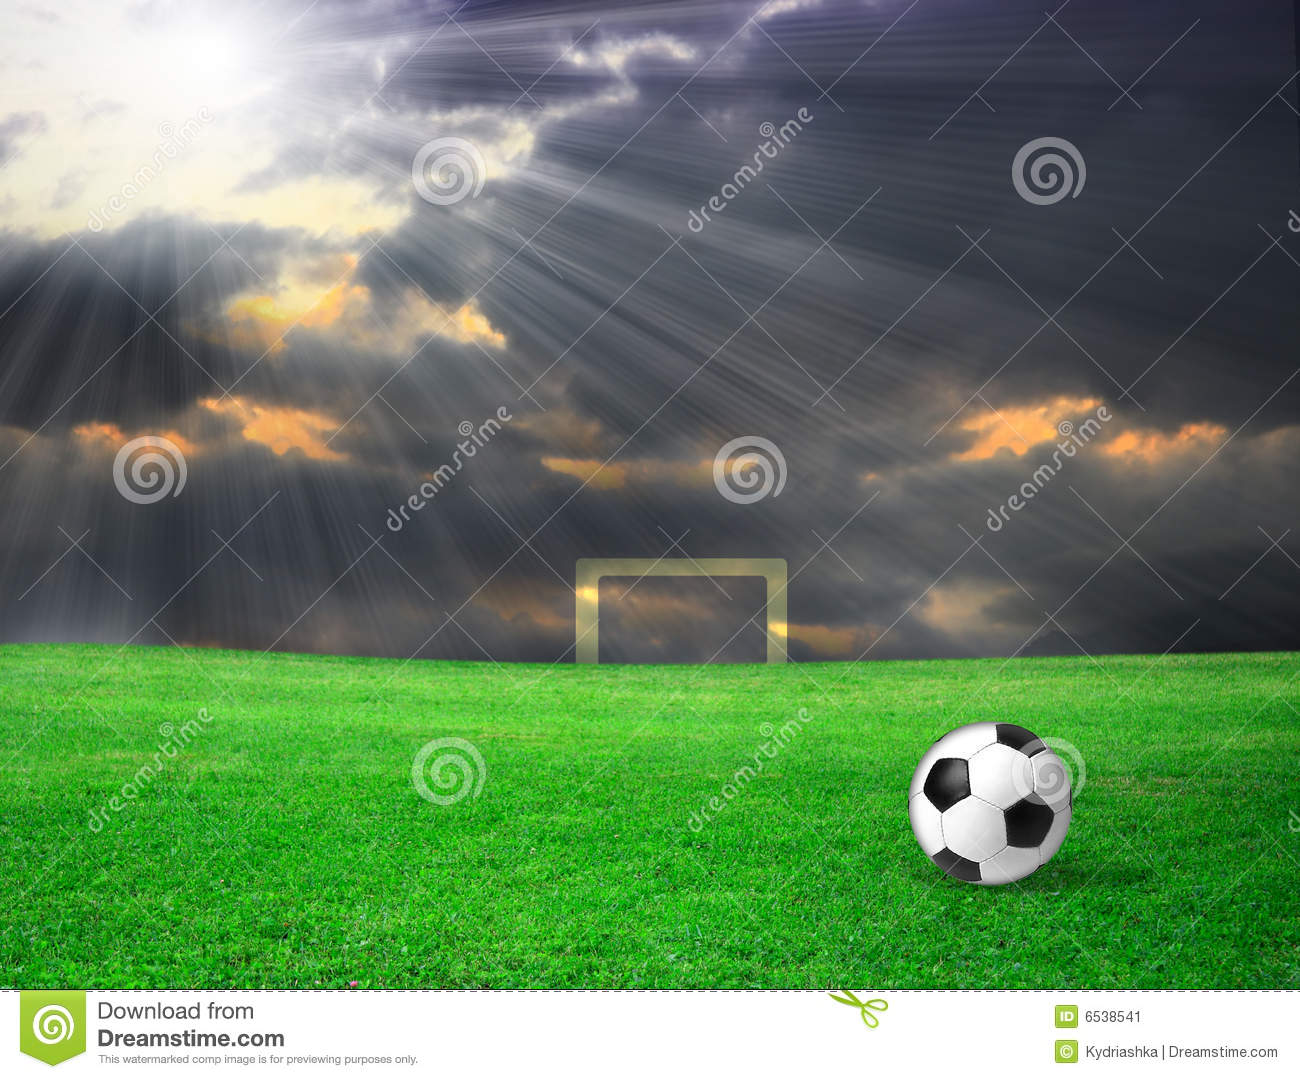 a description of my place of zen the soccer field Auditor general hassan ziyath has announced changes to the accounting field in the  away from solidifying their place in history pic  description under 100.